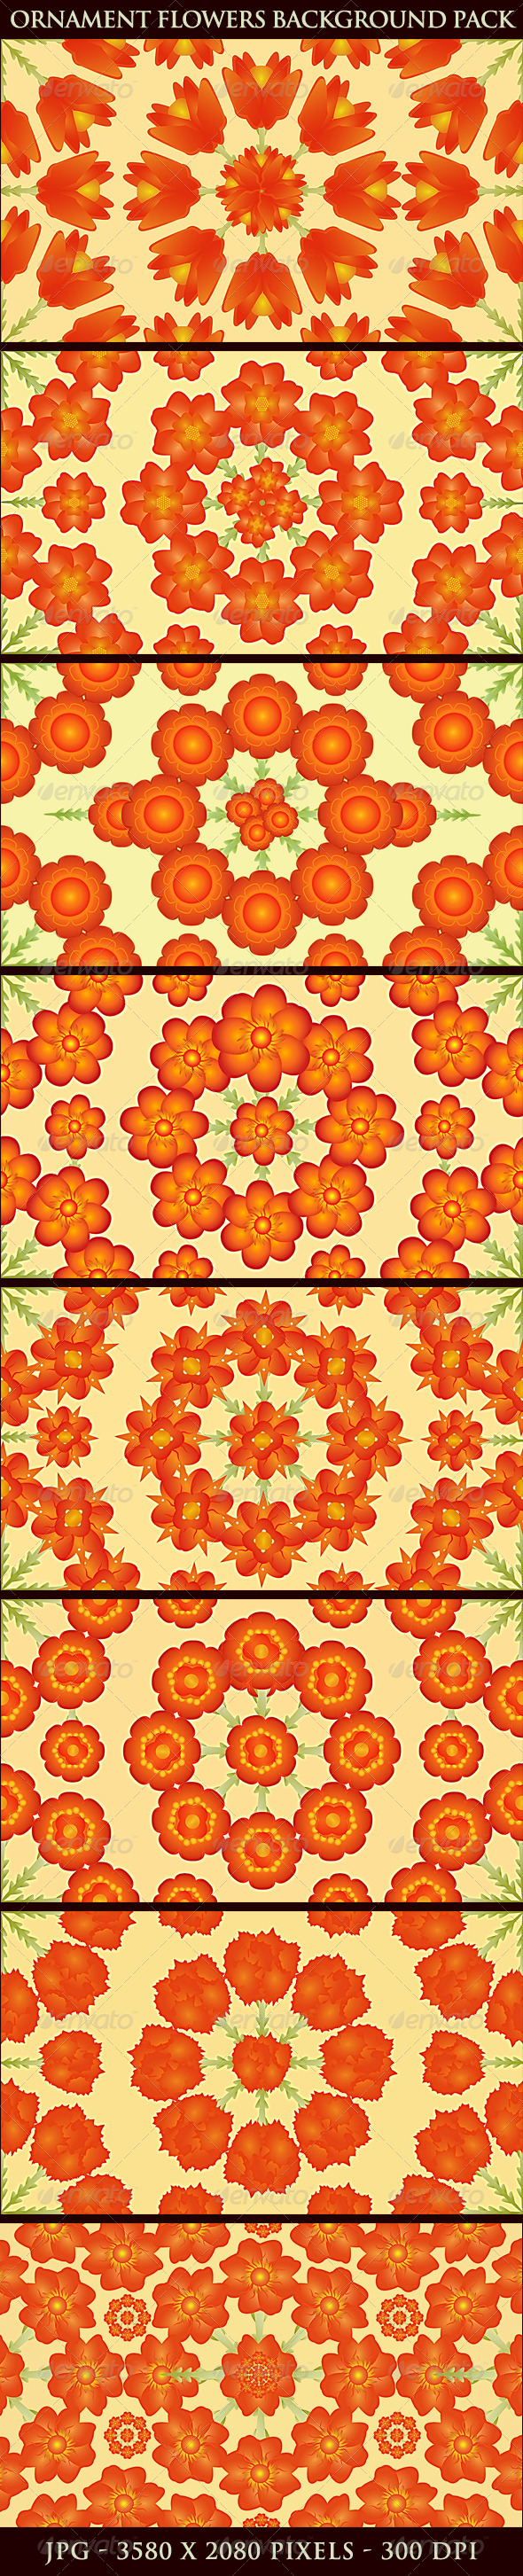 GraphicRiver Ornament Pattern Flowers Backgrounds Pack 5343663